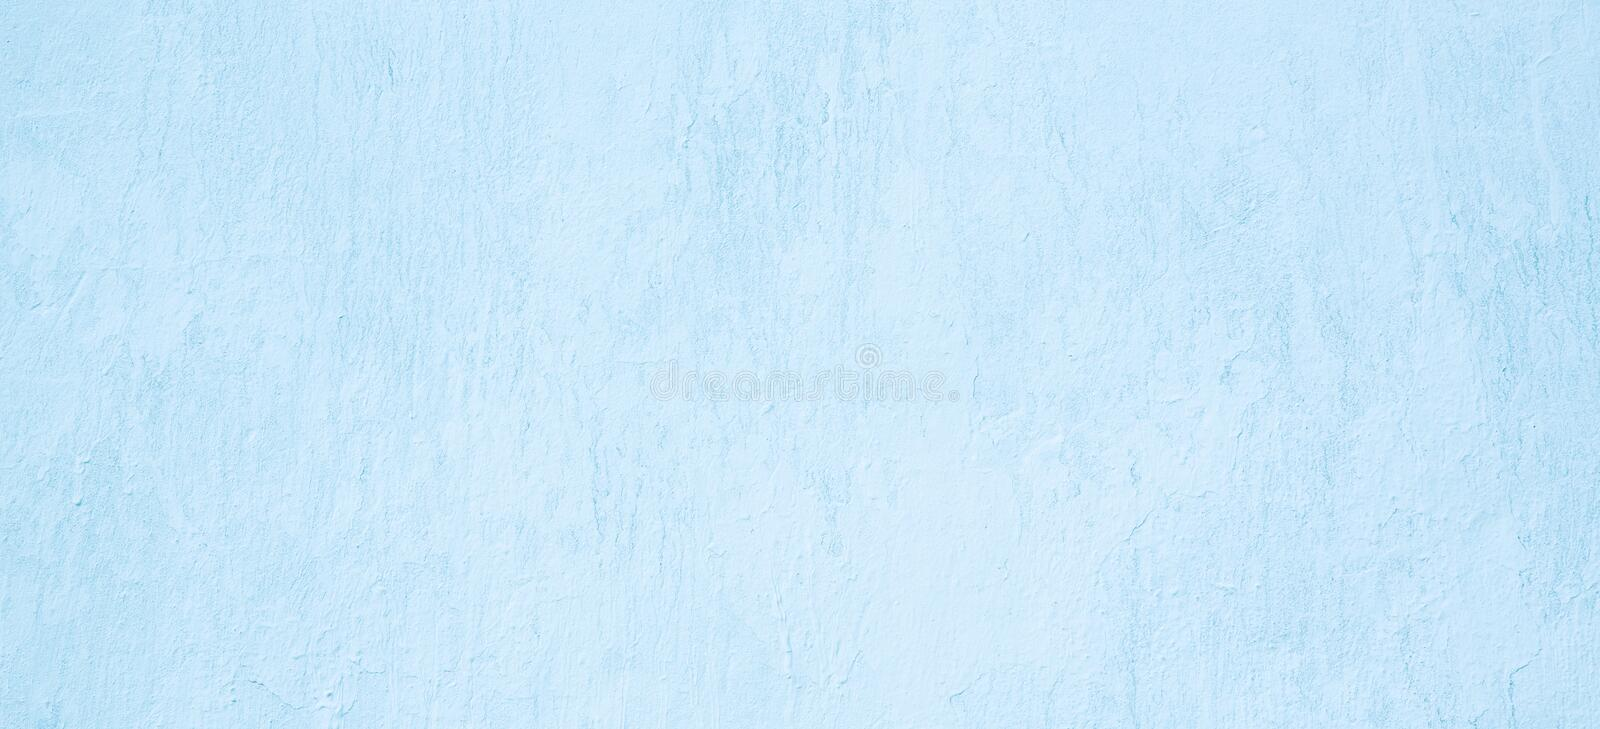 Abstract Grunge Decorative Light Blue background stock photography